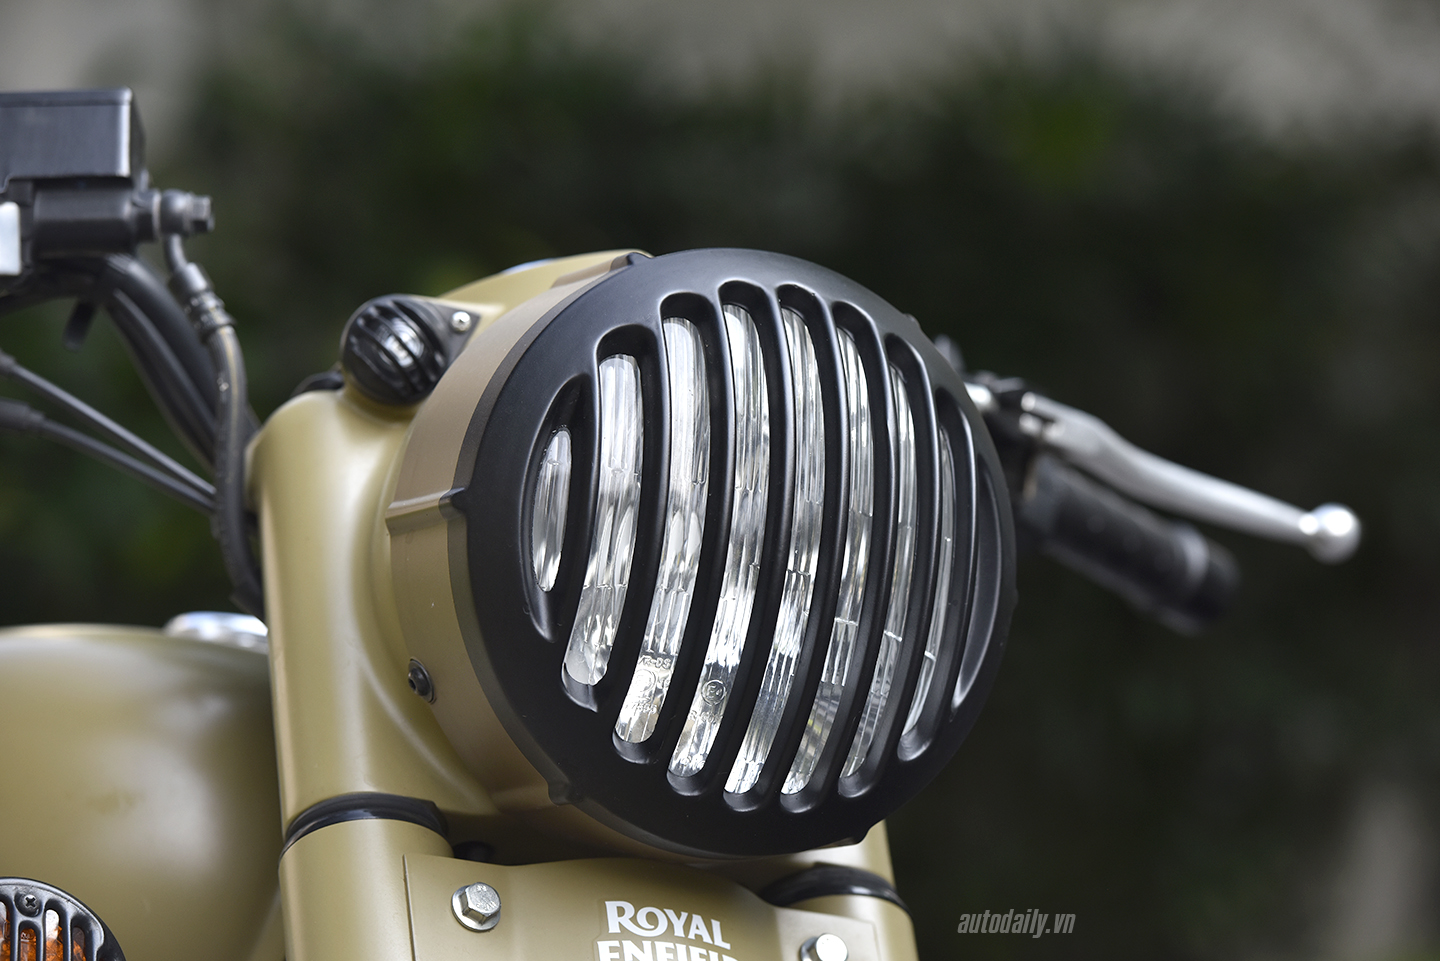 royal-enfield-dsc7996-copy.jpg